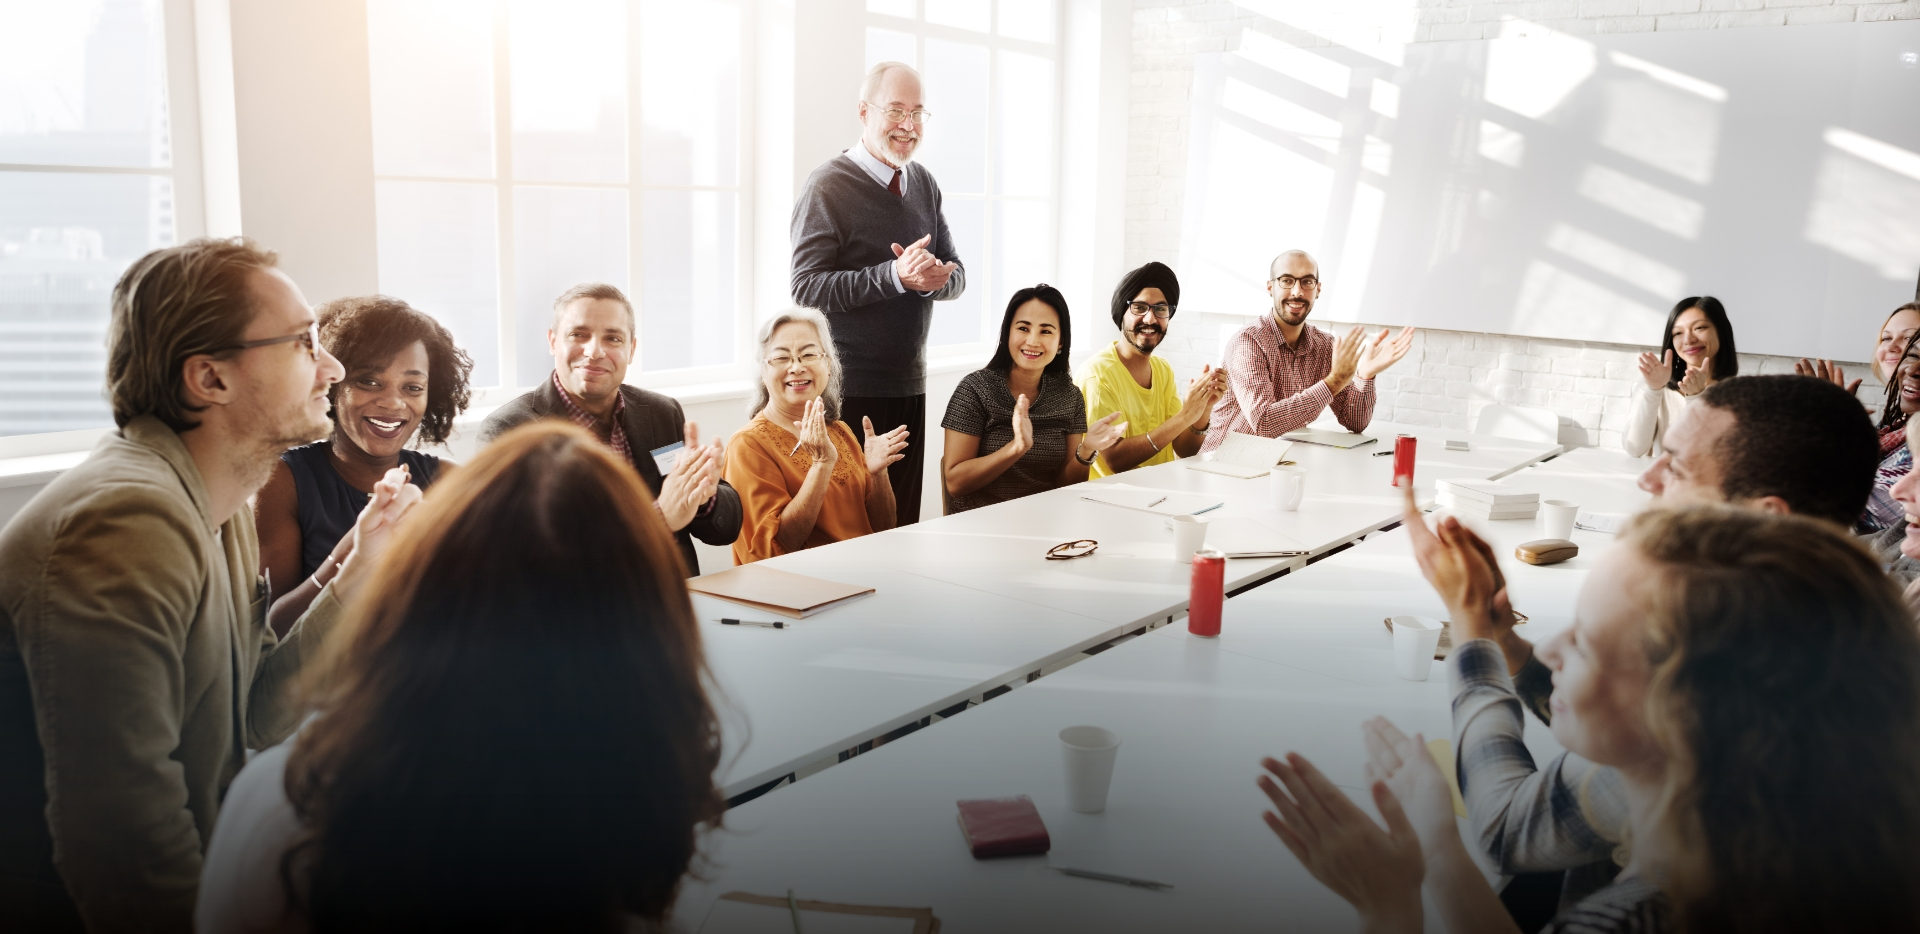 a dozen colleagues seated around conference room table encourage and elevate a humble coworker's contribution